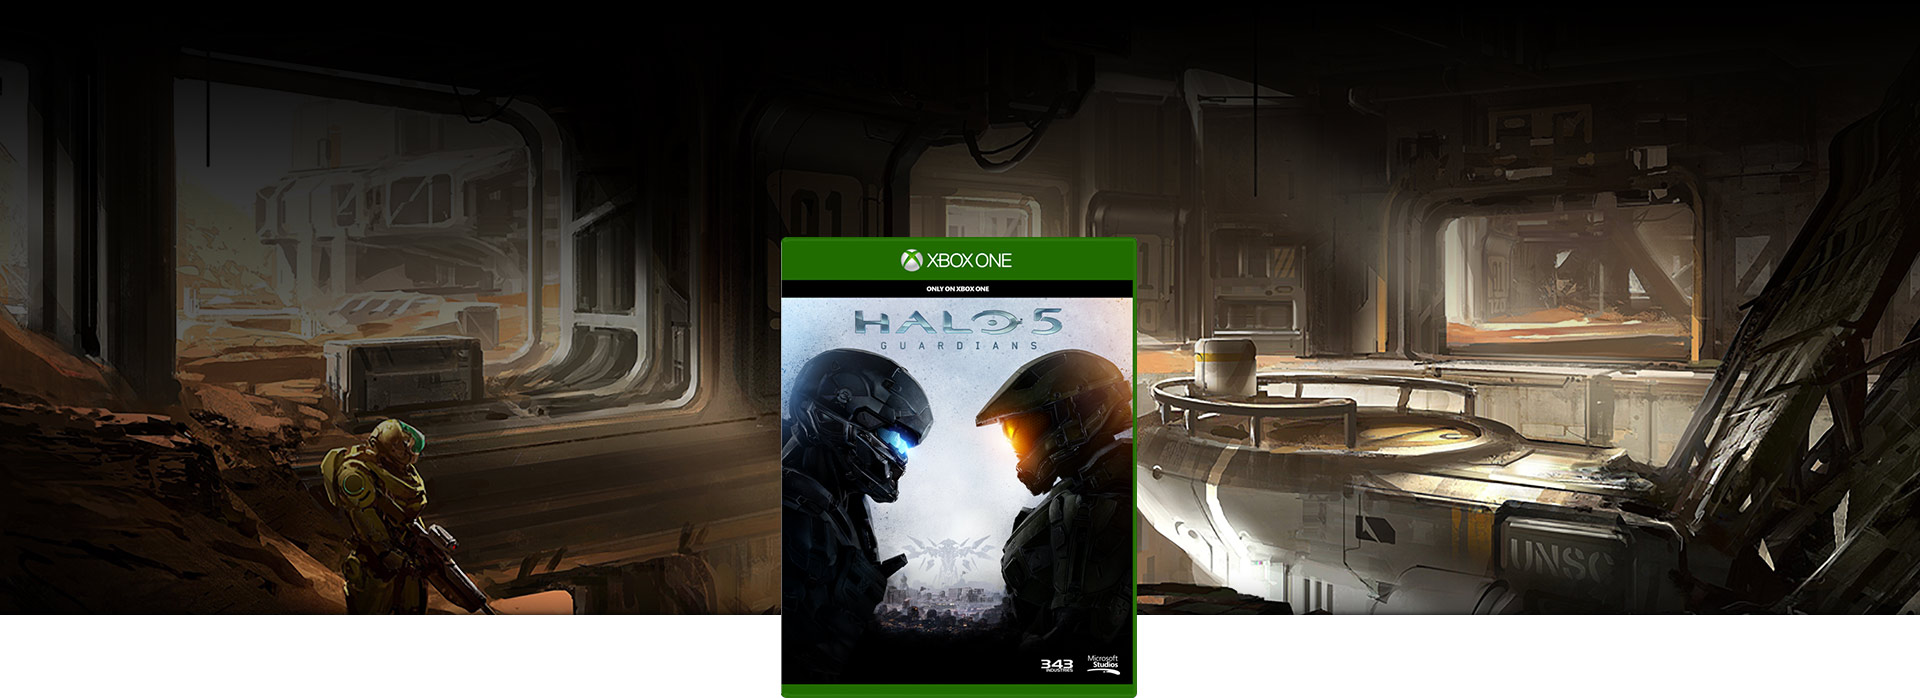 Halo 5 Guardians Box shot